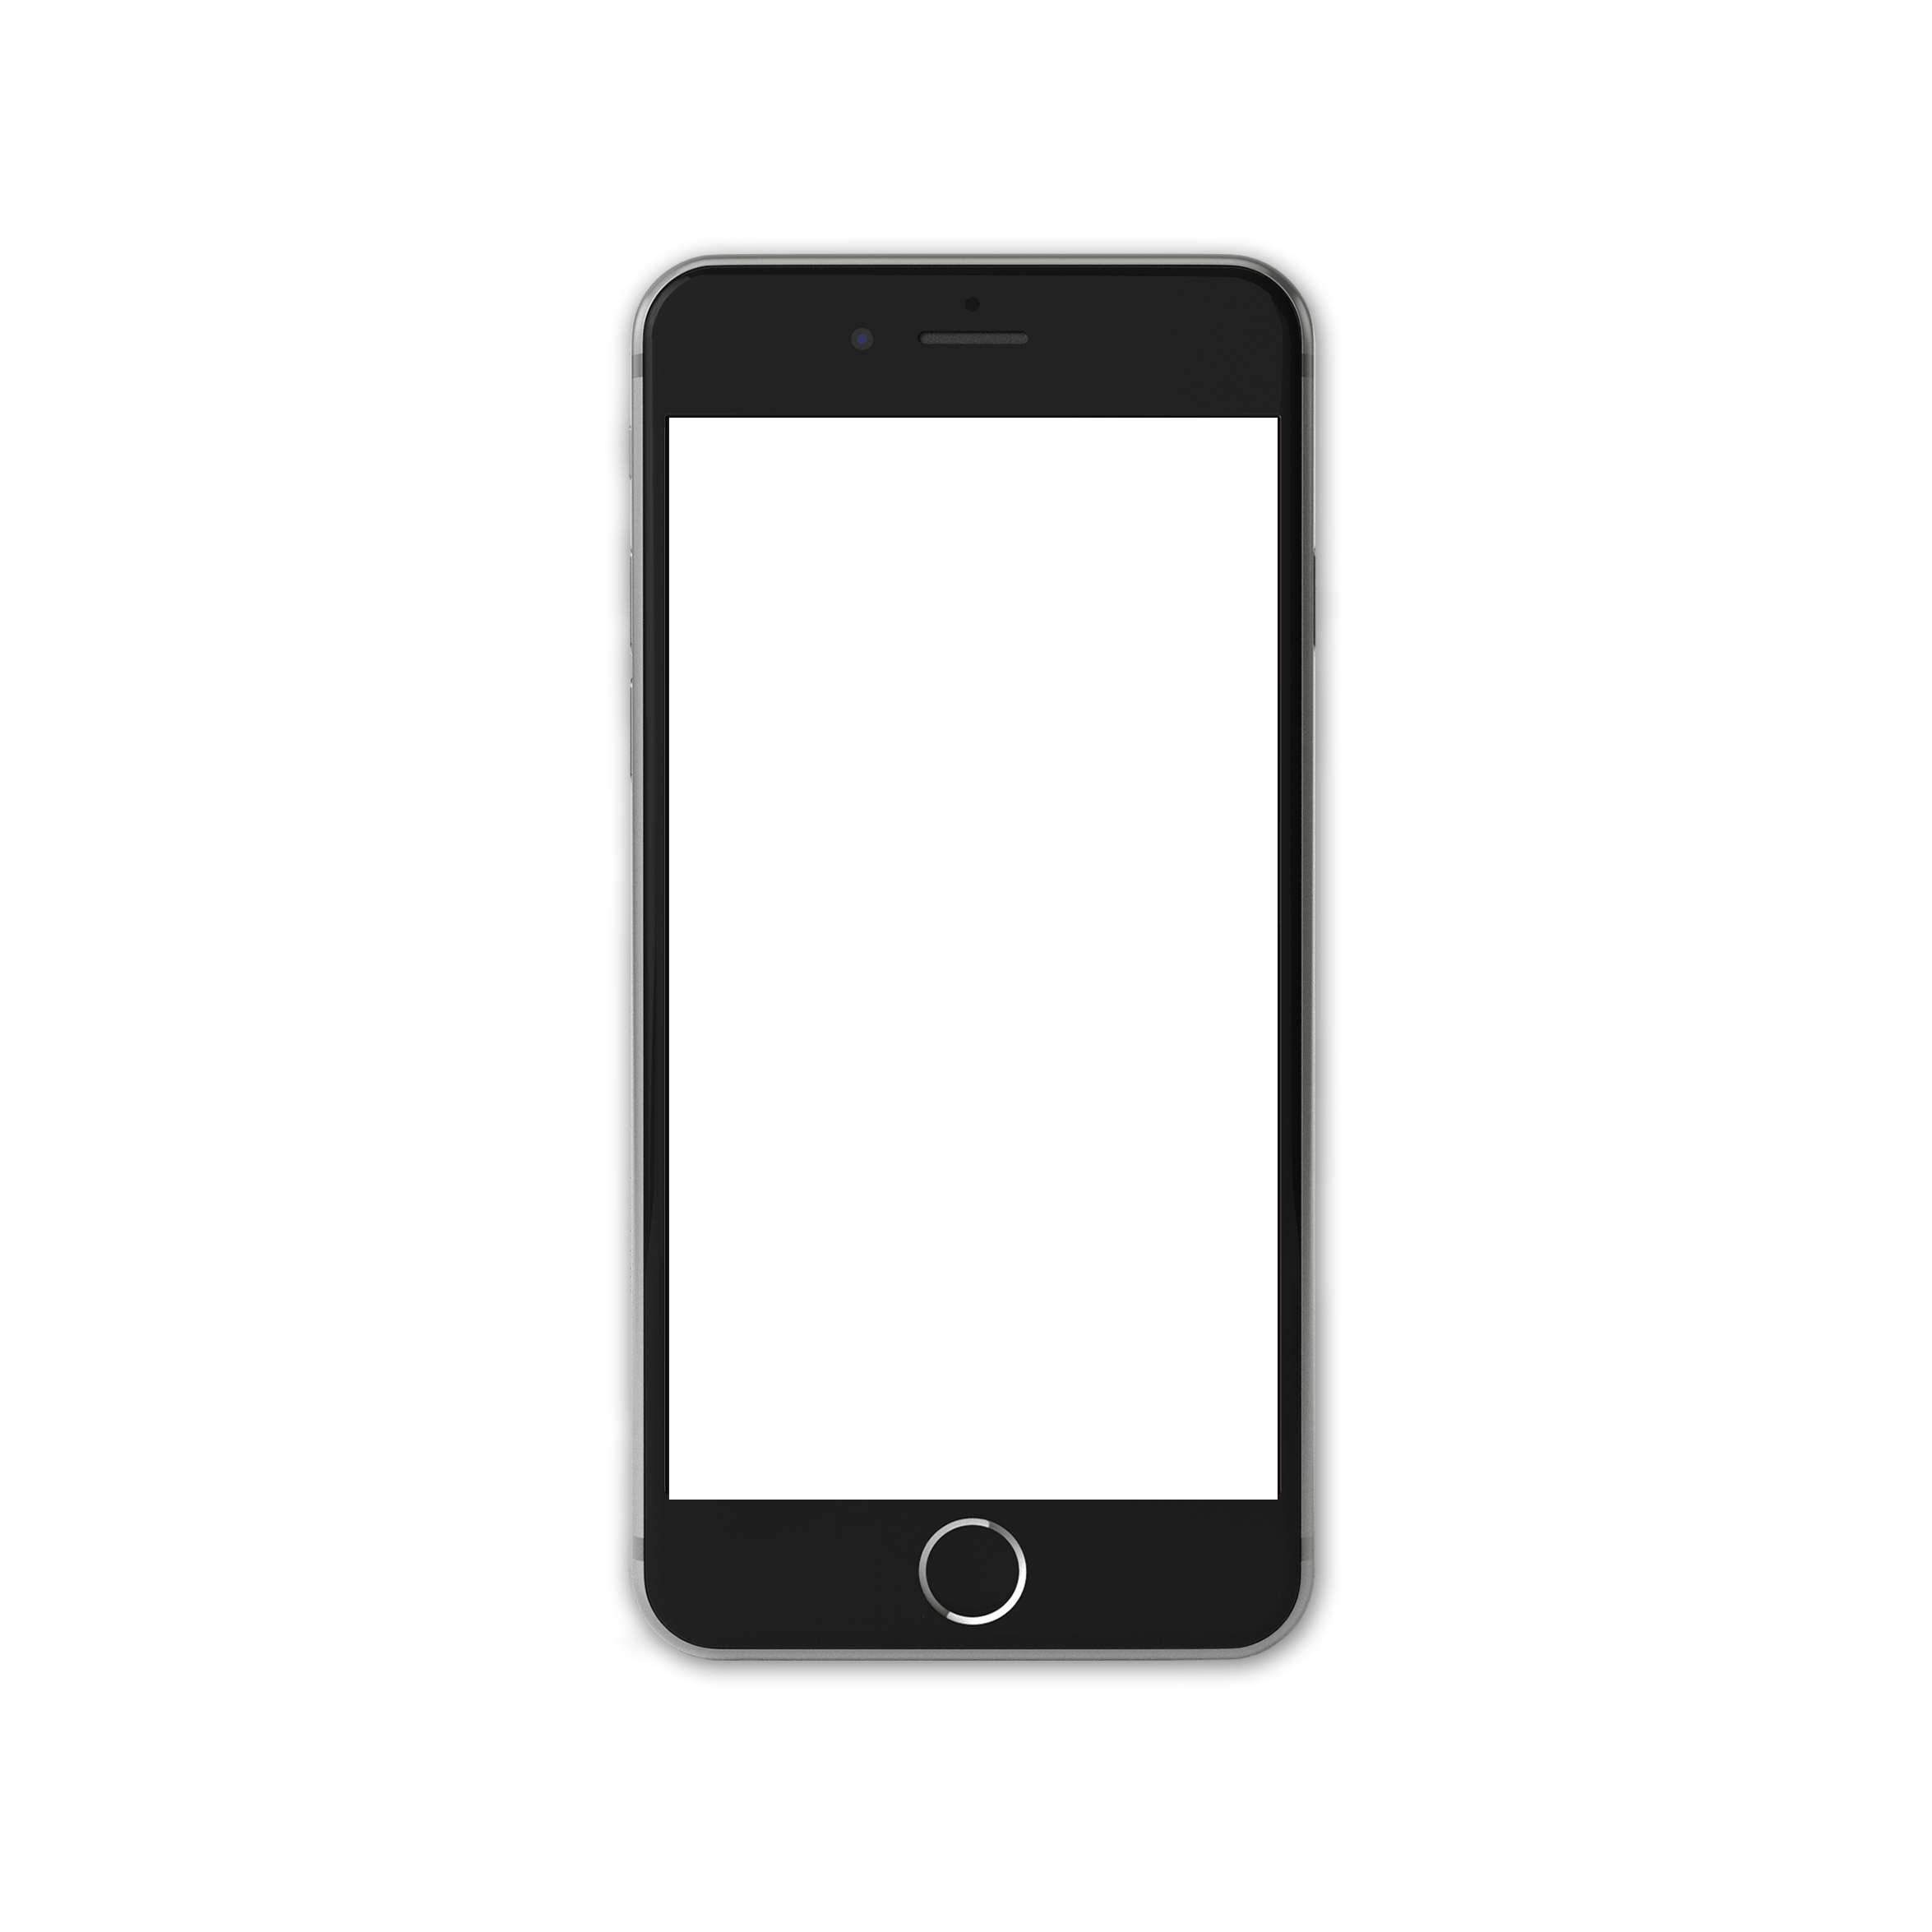 iPhone 5s iPhone 6 iPhone 8 Mockup.